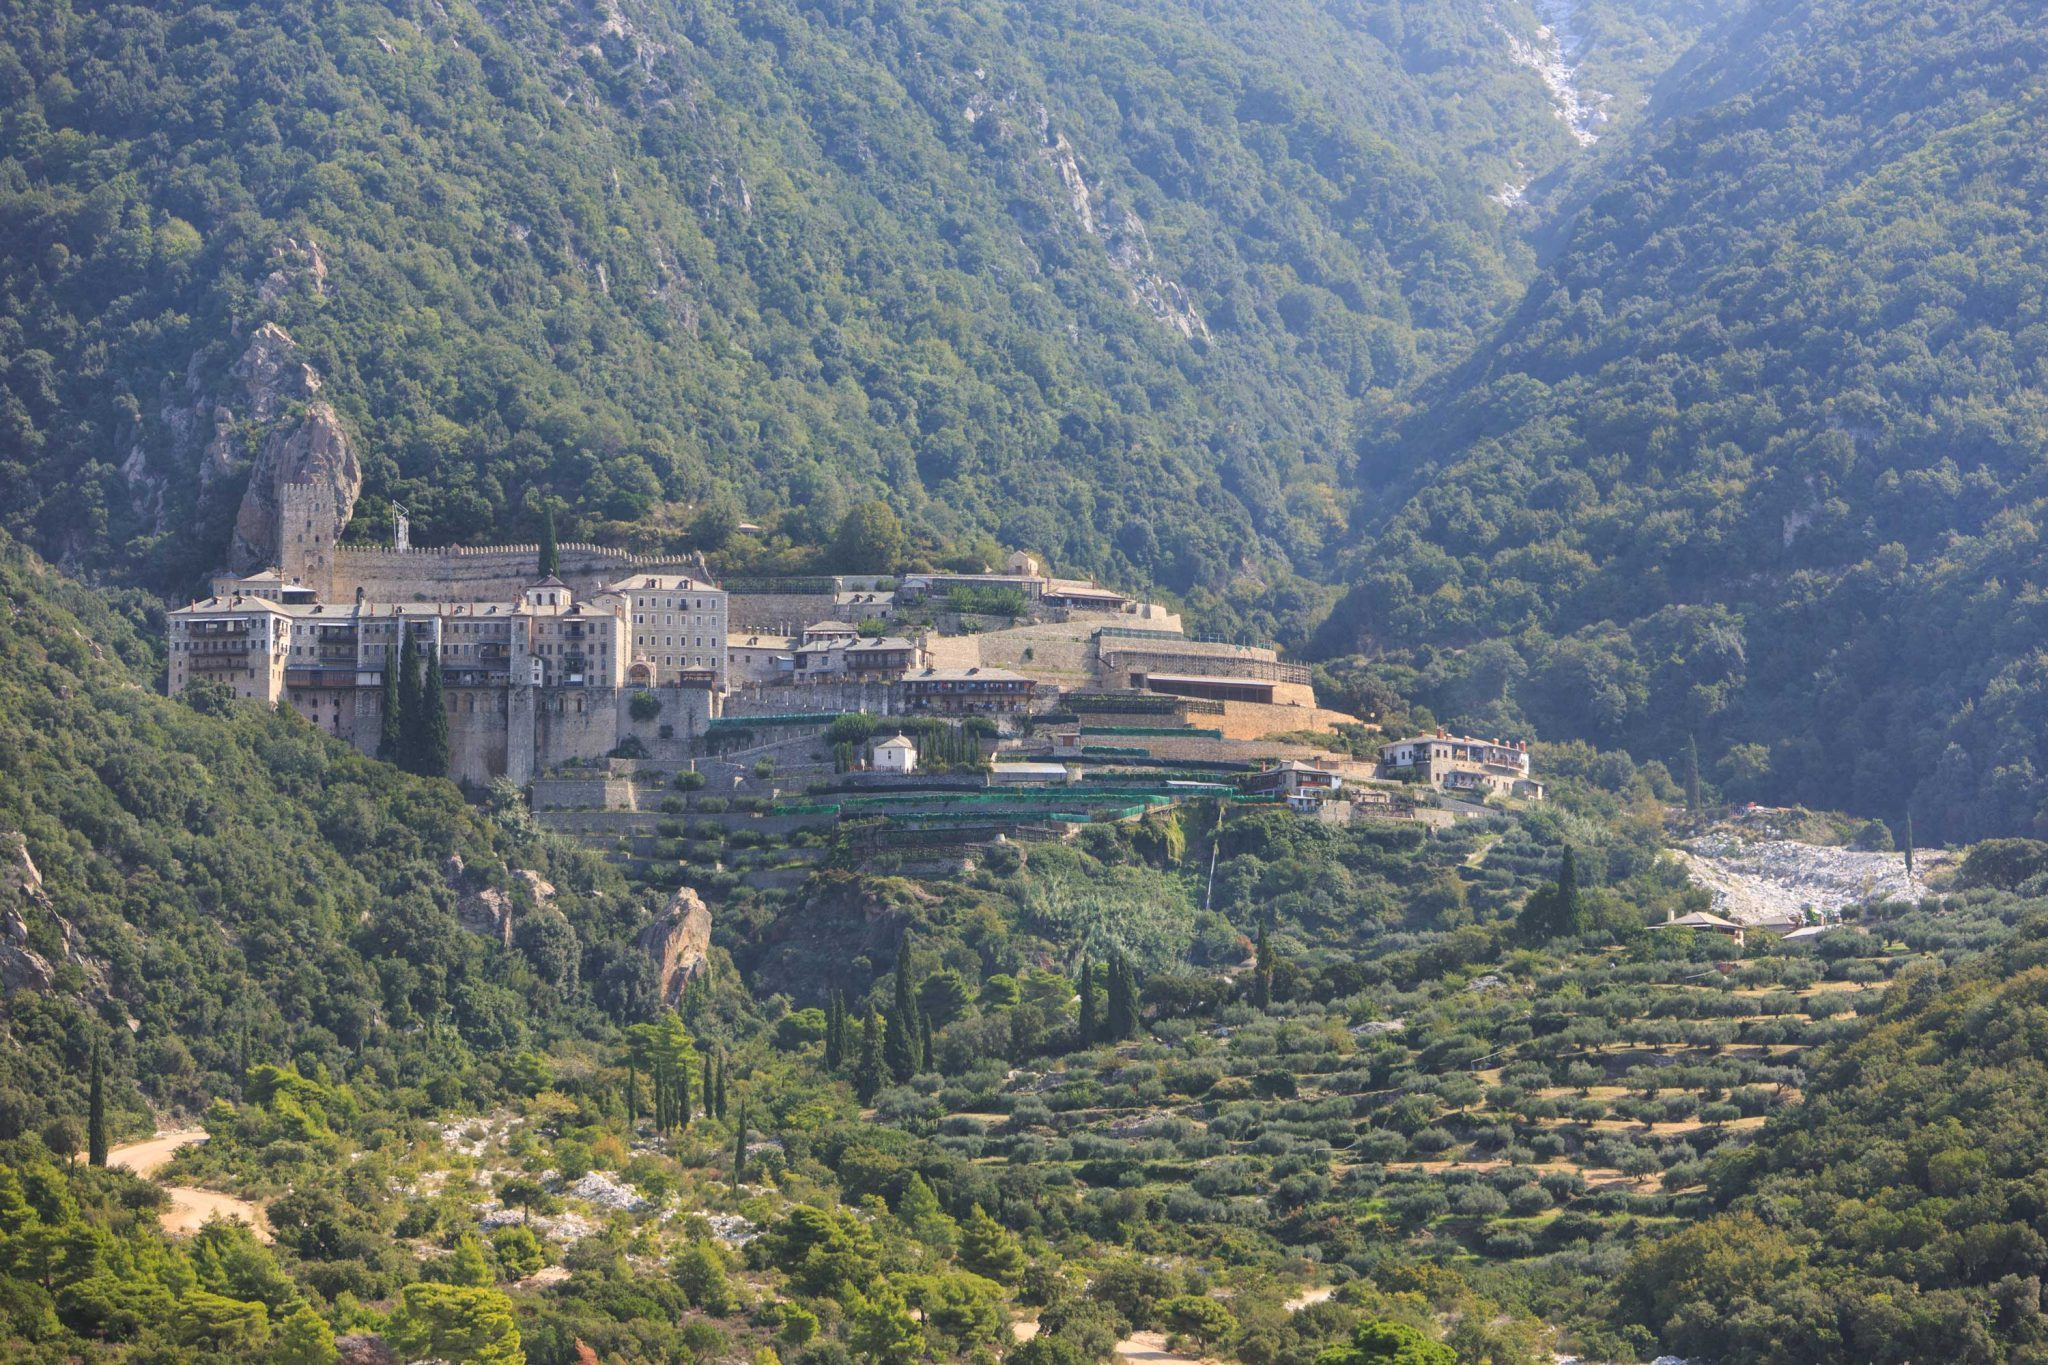 The Holy Monastery of Agios Pavlos (St Paul), Mount Athos